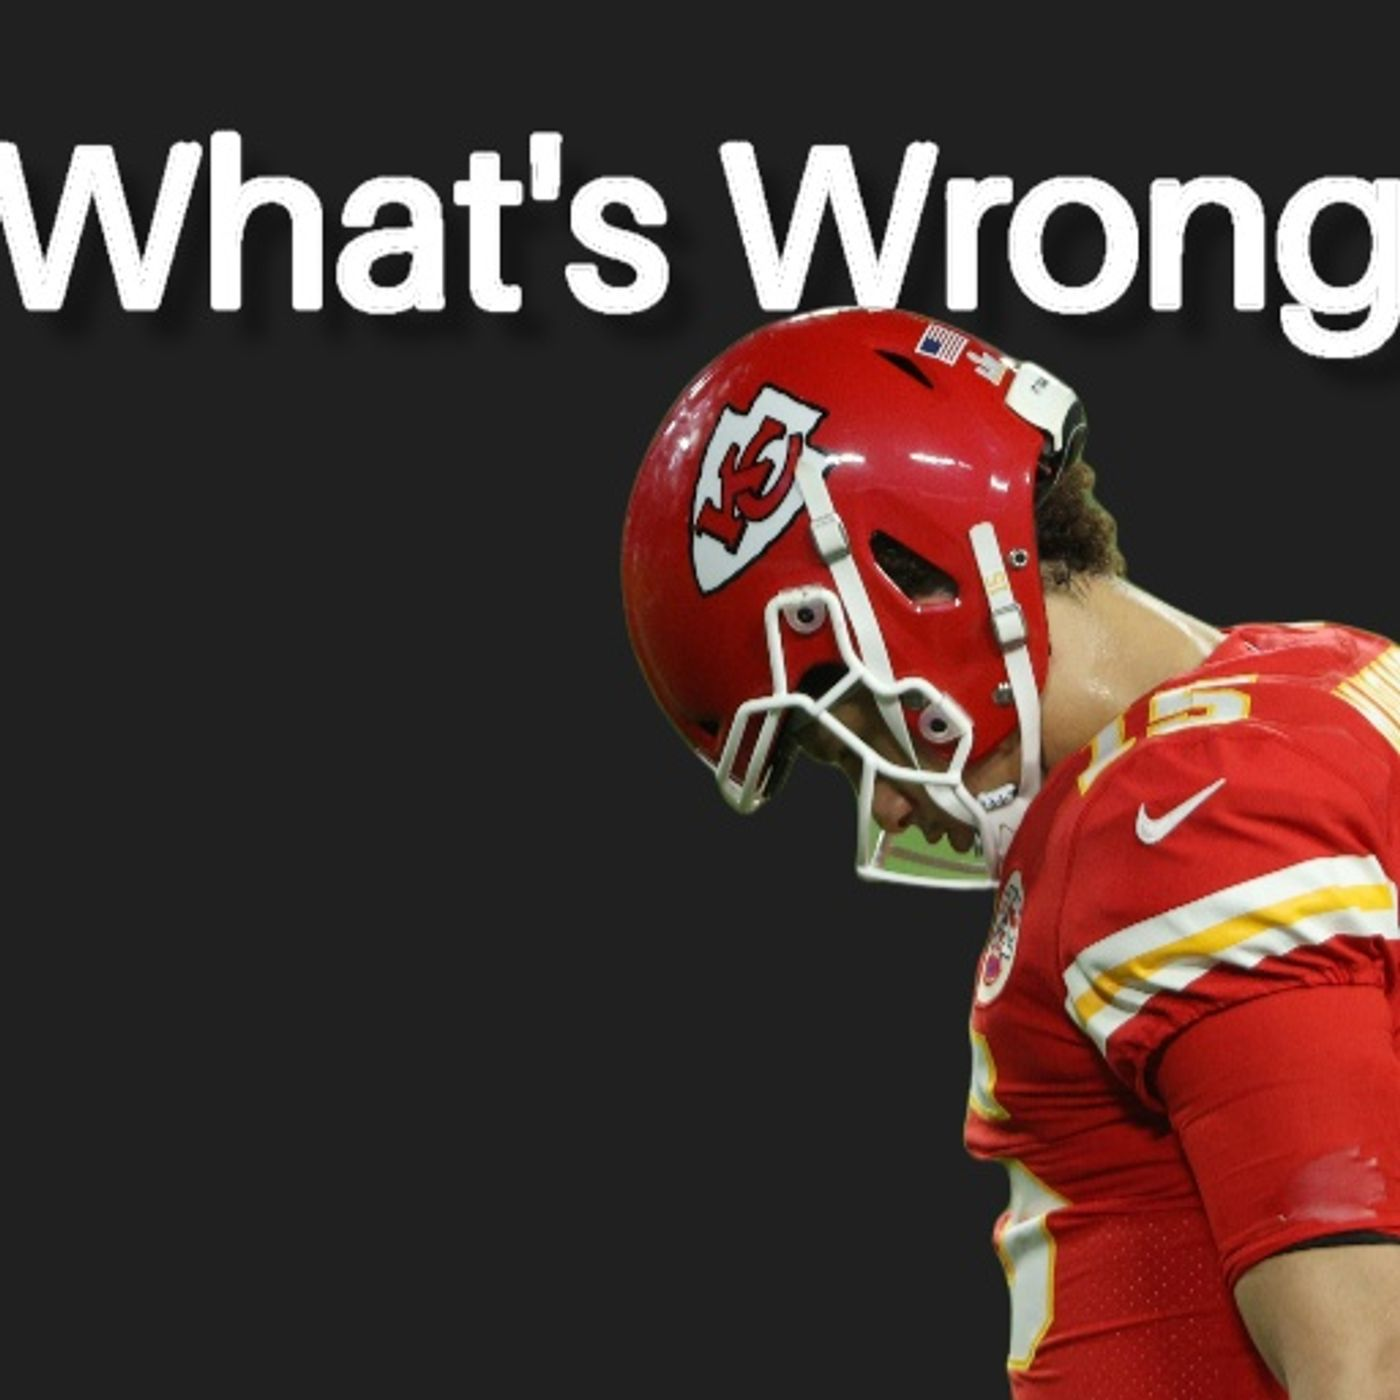 The 3 Point Conversion Sports Lounge - Kyrie & Andrew Not Vaccinated, UGA Best Team, What's Wrong With The Chiefs, Braves